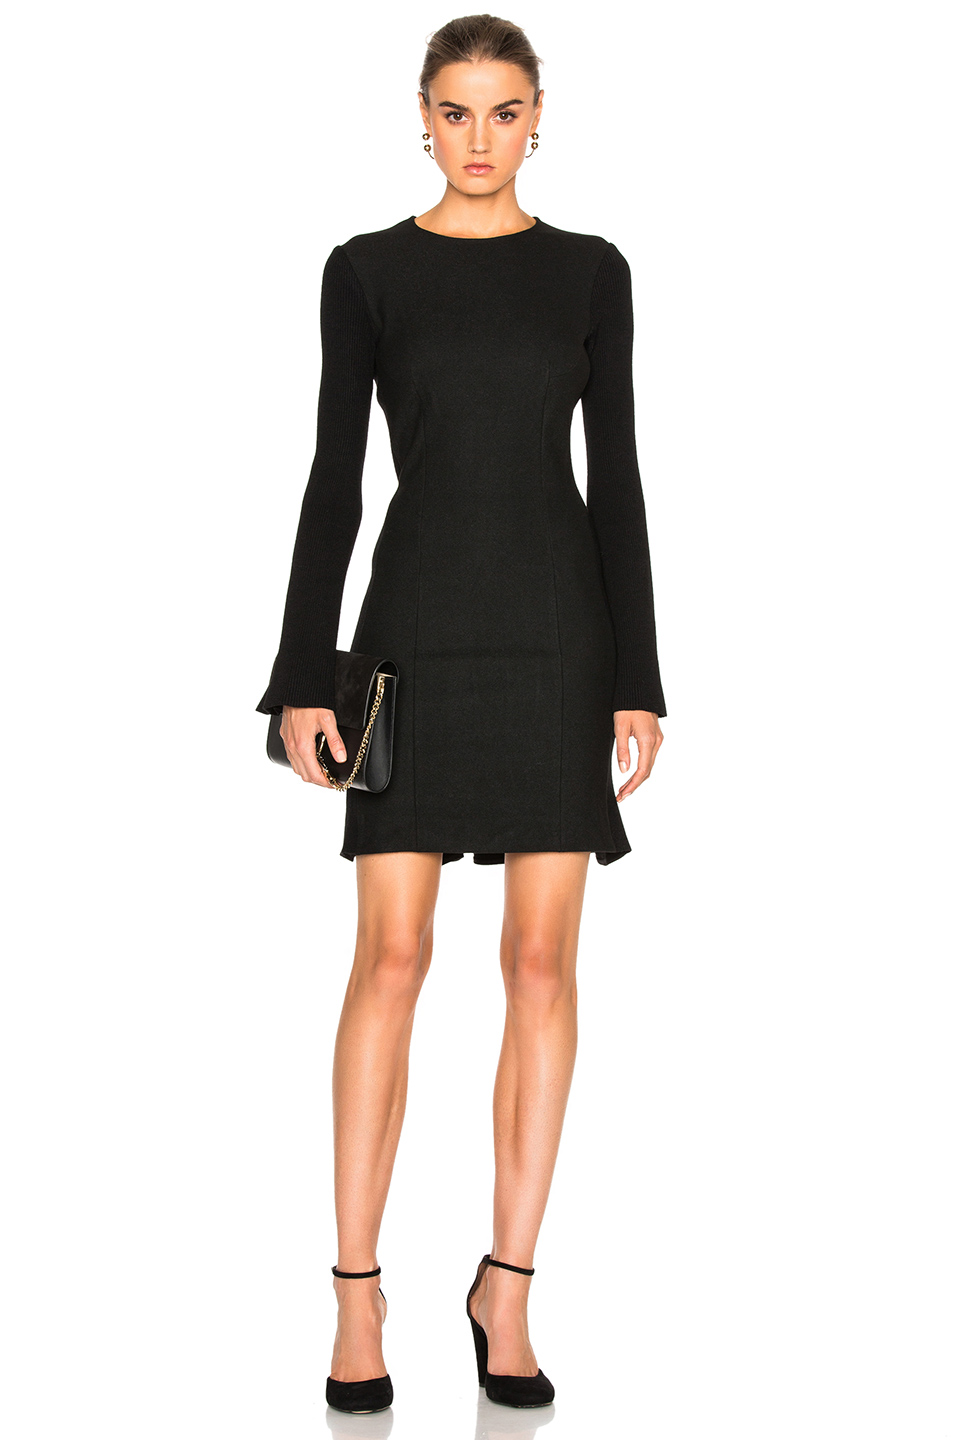 DEREK LAM 10 CROSBY Shift Dress in Black